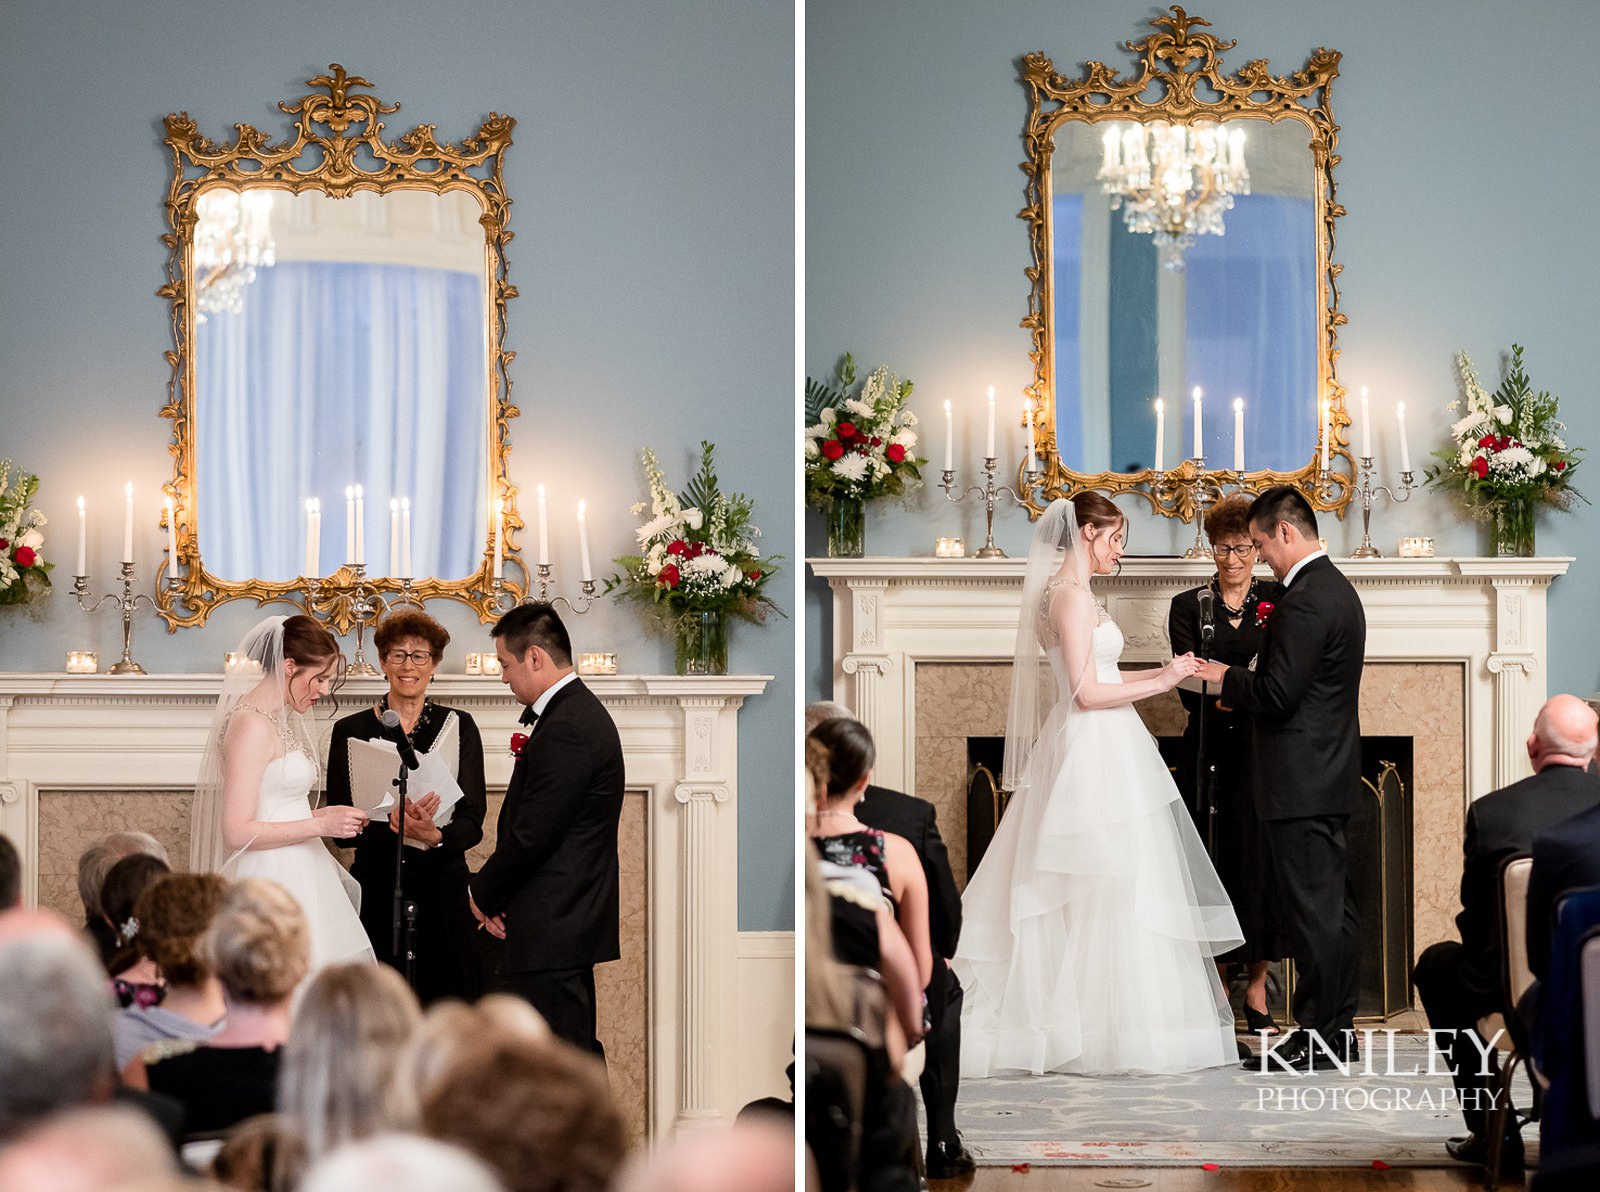 075 - Rochester NY wedding pictures - Genesee Valley Club - Ceremony and Reception.jpg